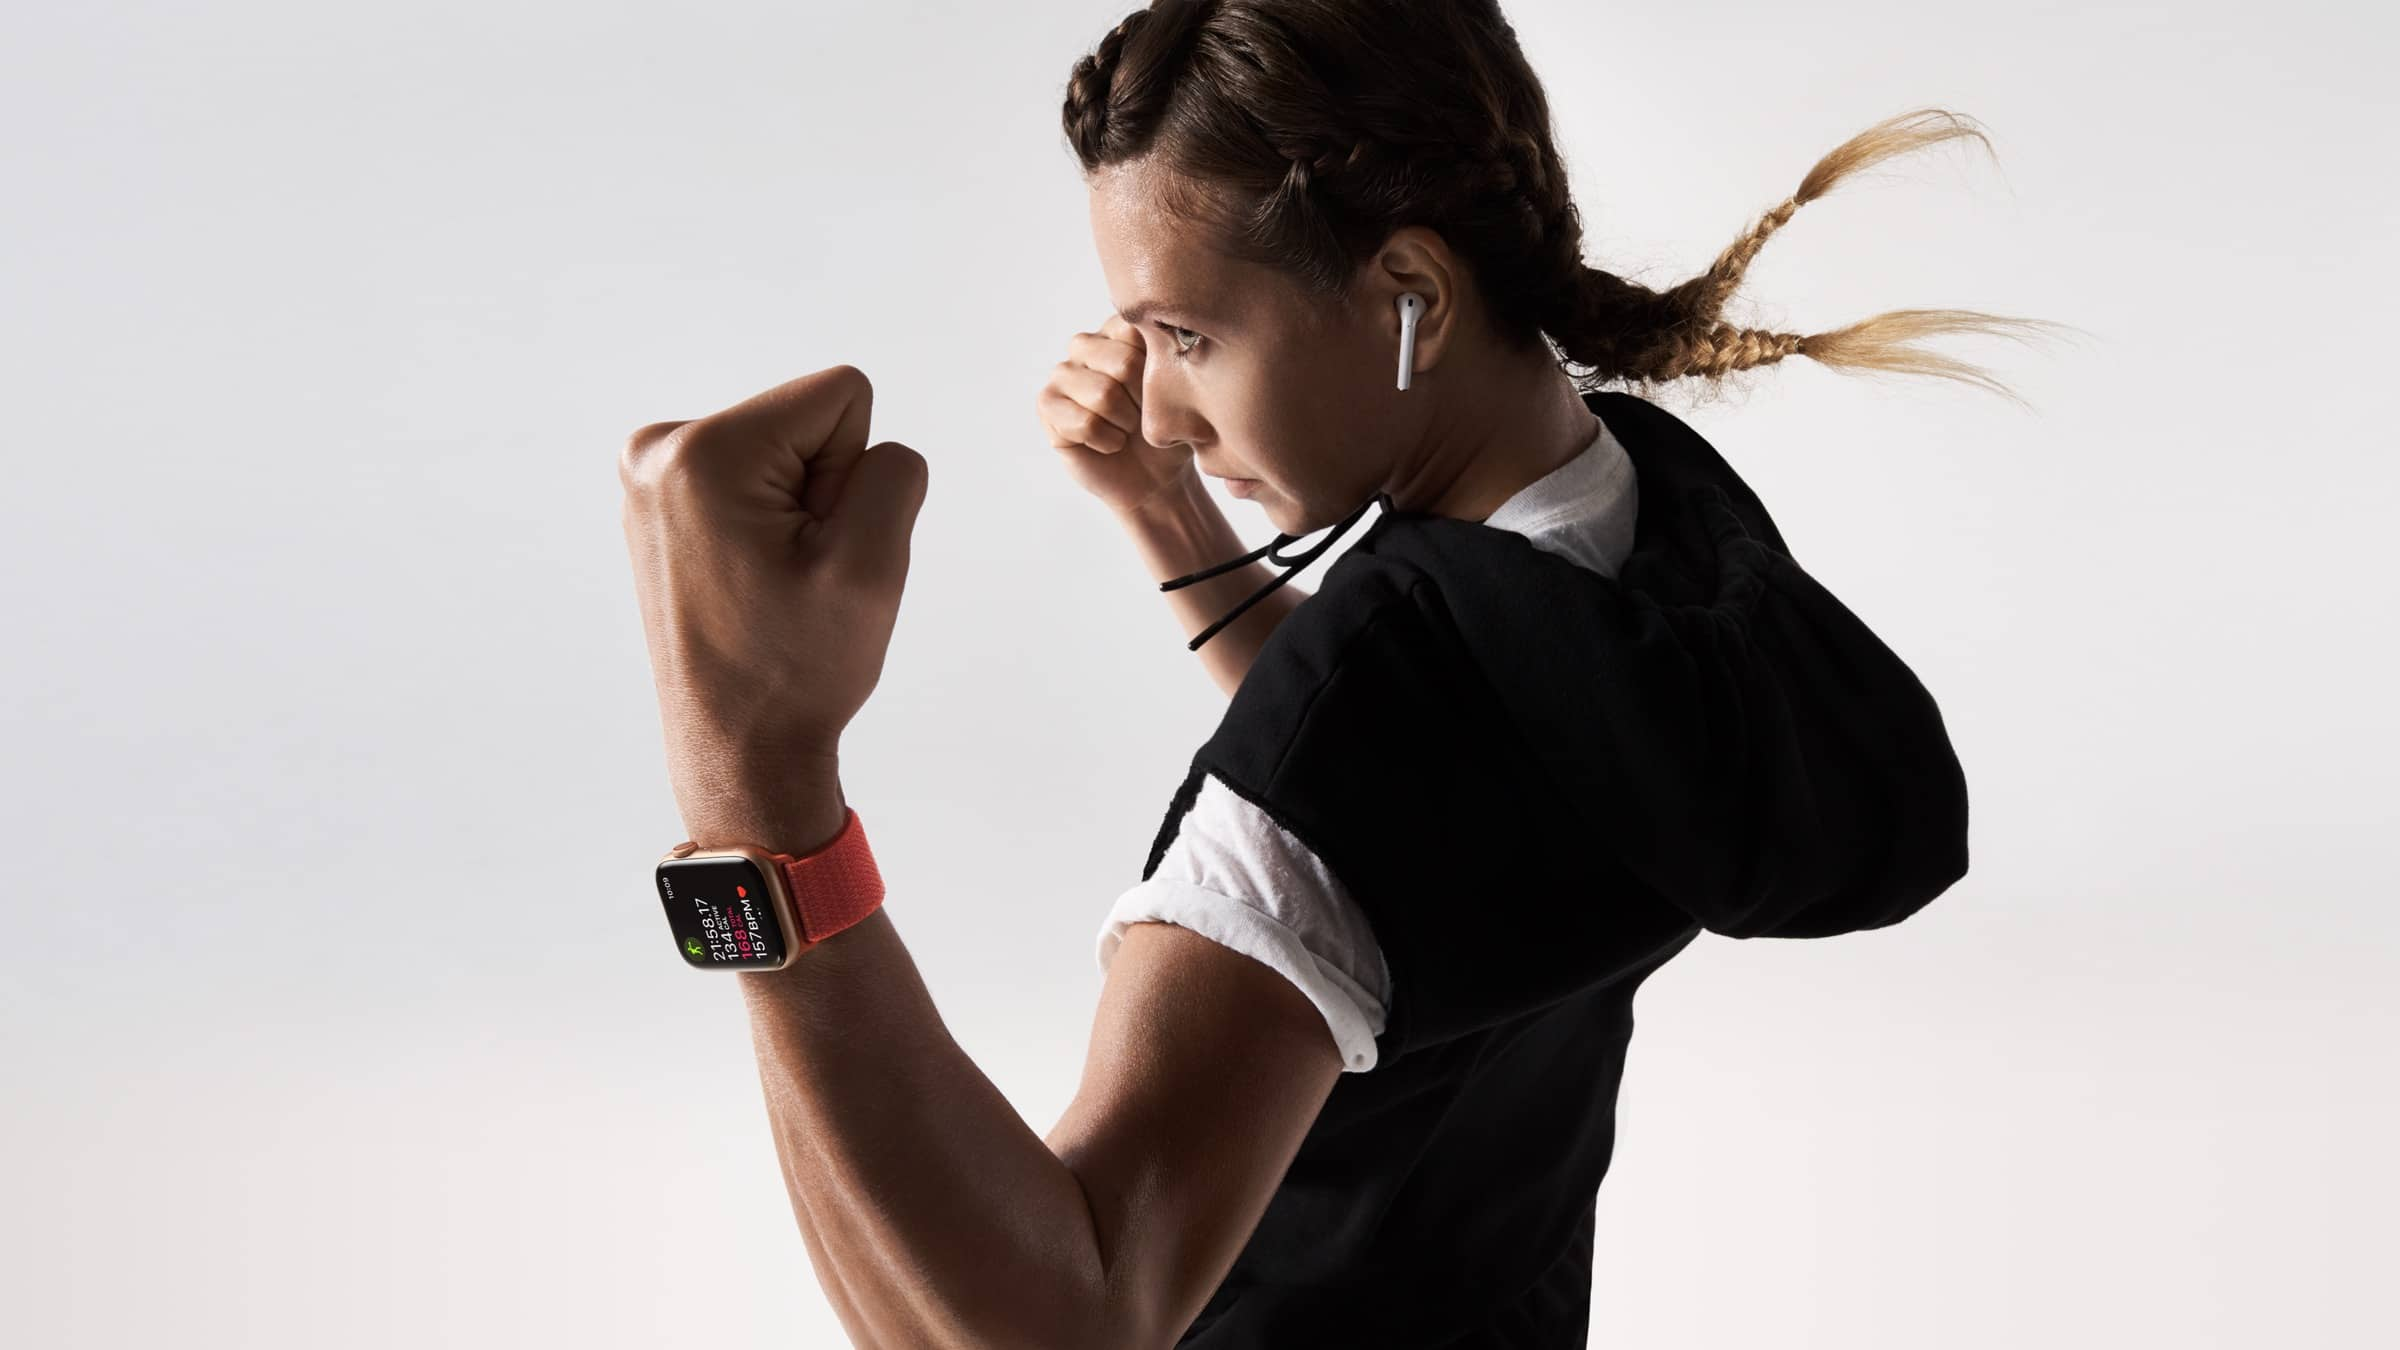 The best smartwatches in 2019 to keep track of your fitness goals with